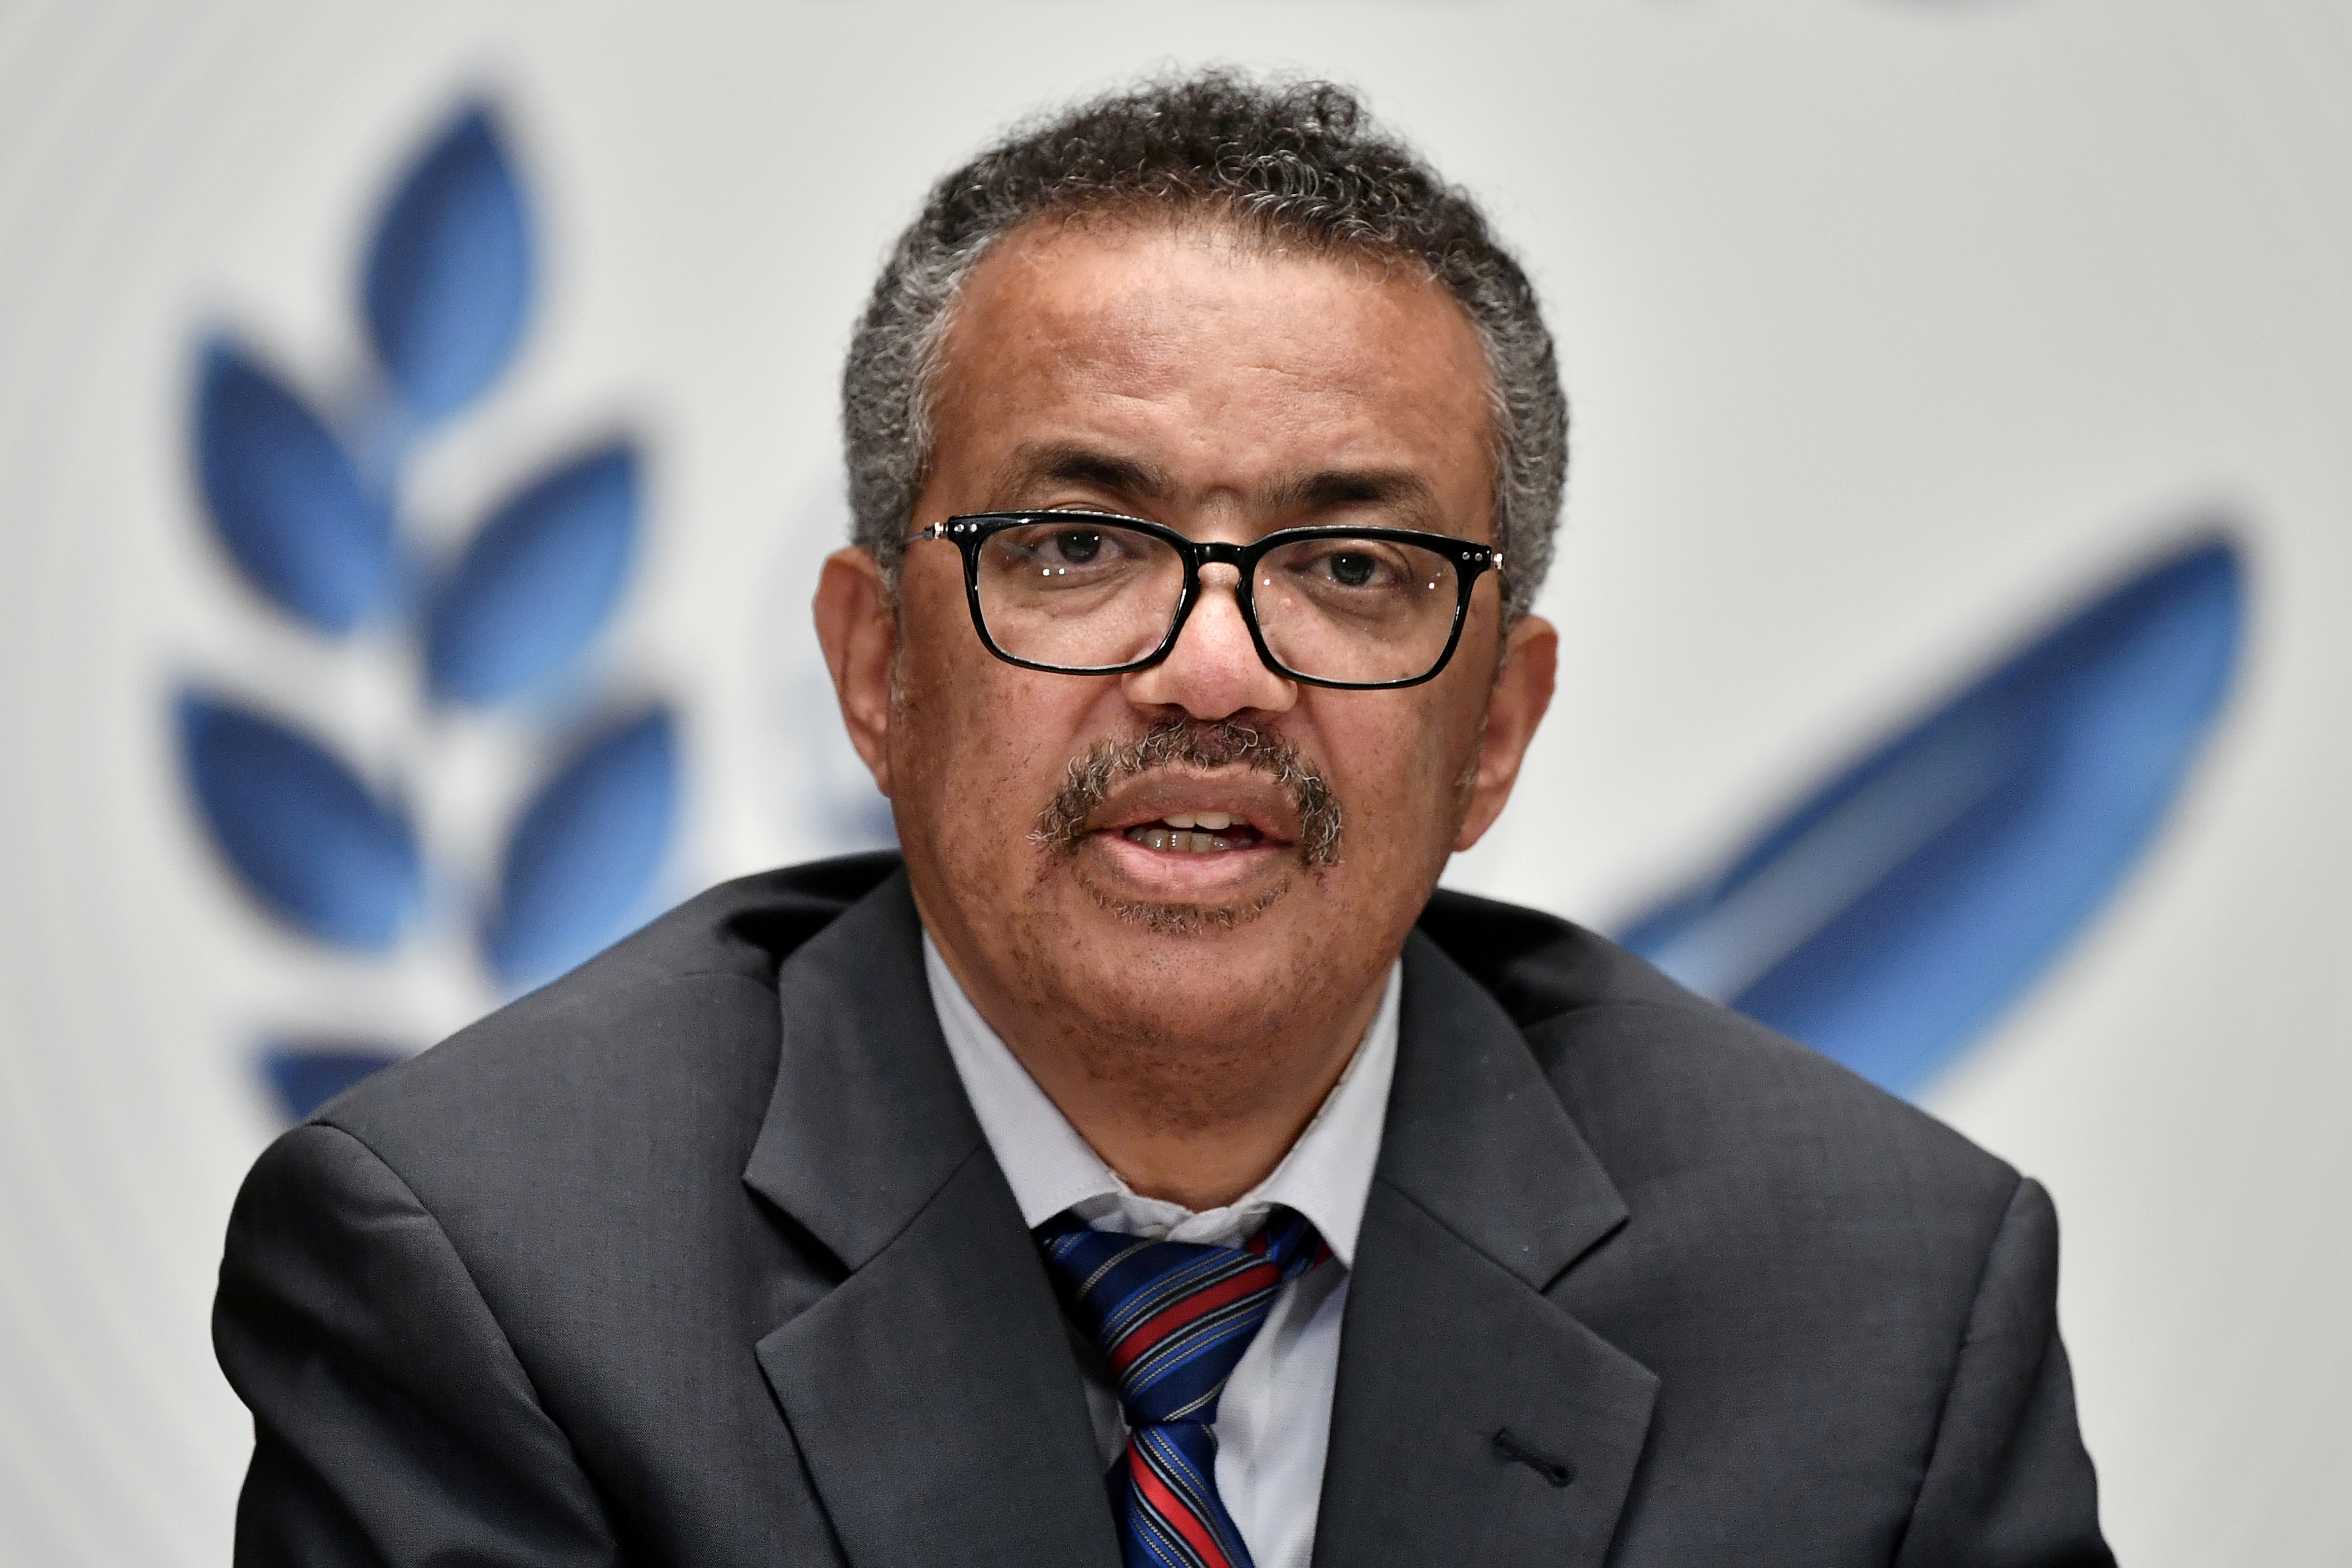 World Health Organization (WHO) Director-General Tedros Adhanom Ghebreyesus attends a news conference organized by Geneva Association of United Nations Correspondents (ACANU) amid the COVID-19 outbreak, caused by the novel coronavirus, at the WHO headquarters in Geneva Switzerland July 3, 2020. Fabrice Coffrini/Pool via REUTERS/File Photo